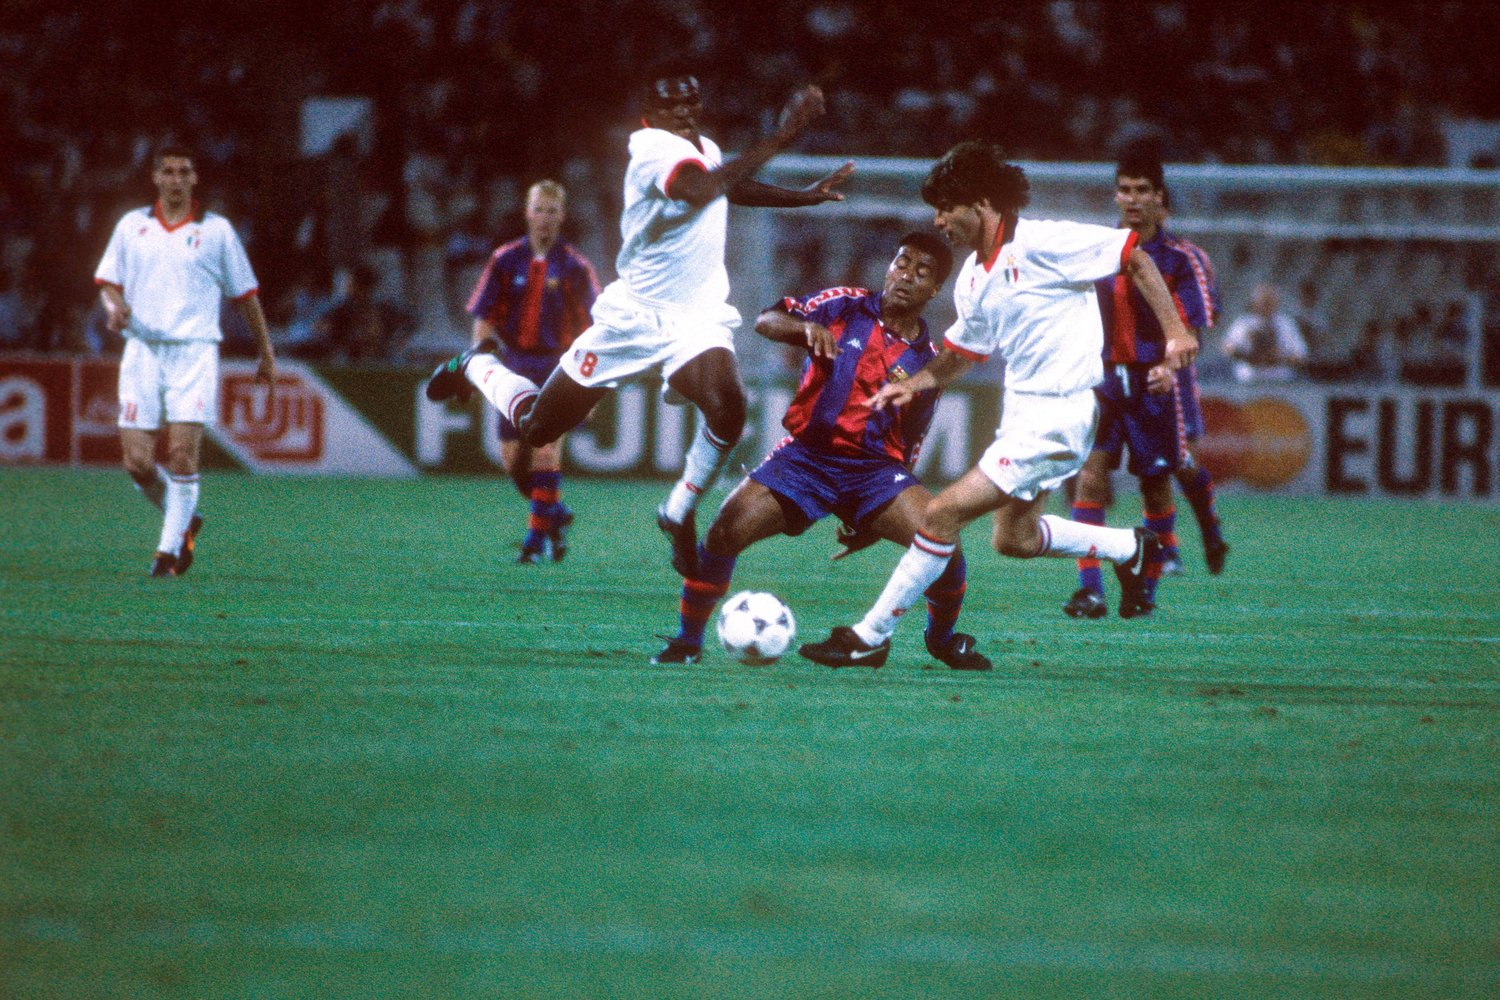 Bildnummer: 05671956 Datum: 18.05.1994 Copyright: imago/Sven Simon Romario (FC Barcelona, Mitte) vs Marcel Desailly (li.) und Paolo Maldini (beide AC Milan); Vdia quer Aufmacher Champions League 1993/1994 Finale Athen Fußball EC 1 Herren Mannschaft Gruppenbild Aktion Personen Image number 05671956 date 18 05 1994 Copyright imago Sven Simon Romario FC Barcelona centre vs Marcel Desailly left and Paolo Maldini both AC Milan Vdia horizontal Highlight Champions League 1993 1994 Final Athens Football EC 1 men Team Group photo Action shot Human Beings